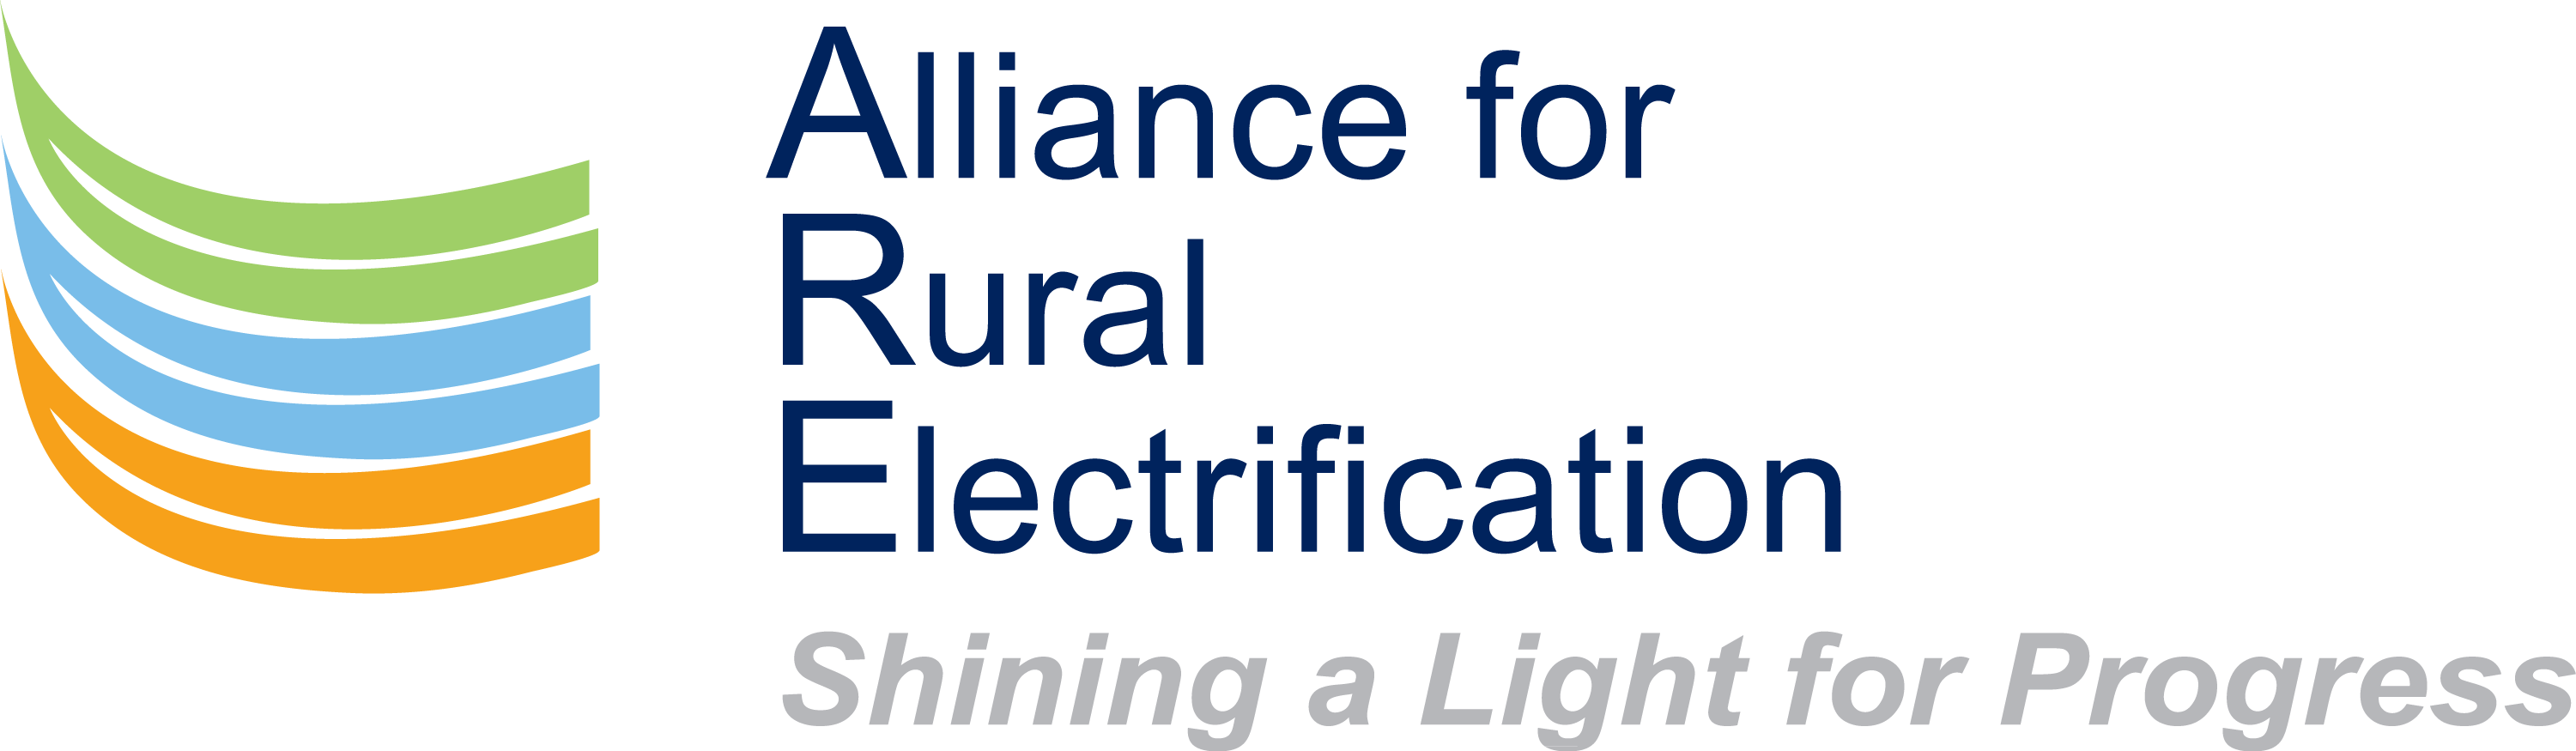 Alliance for Rural Electrification